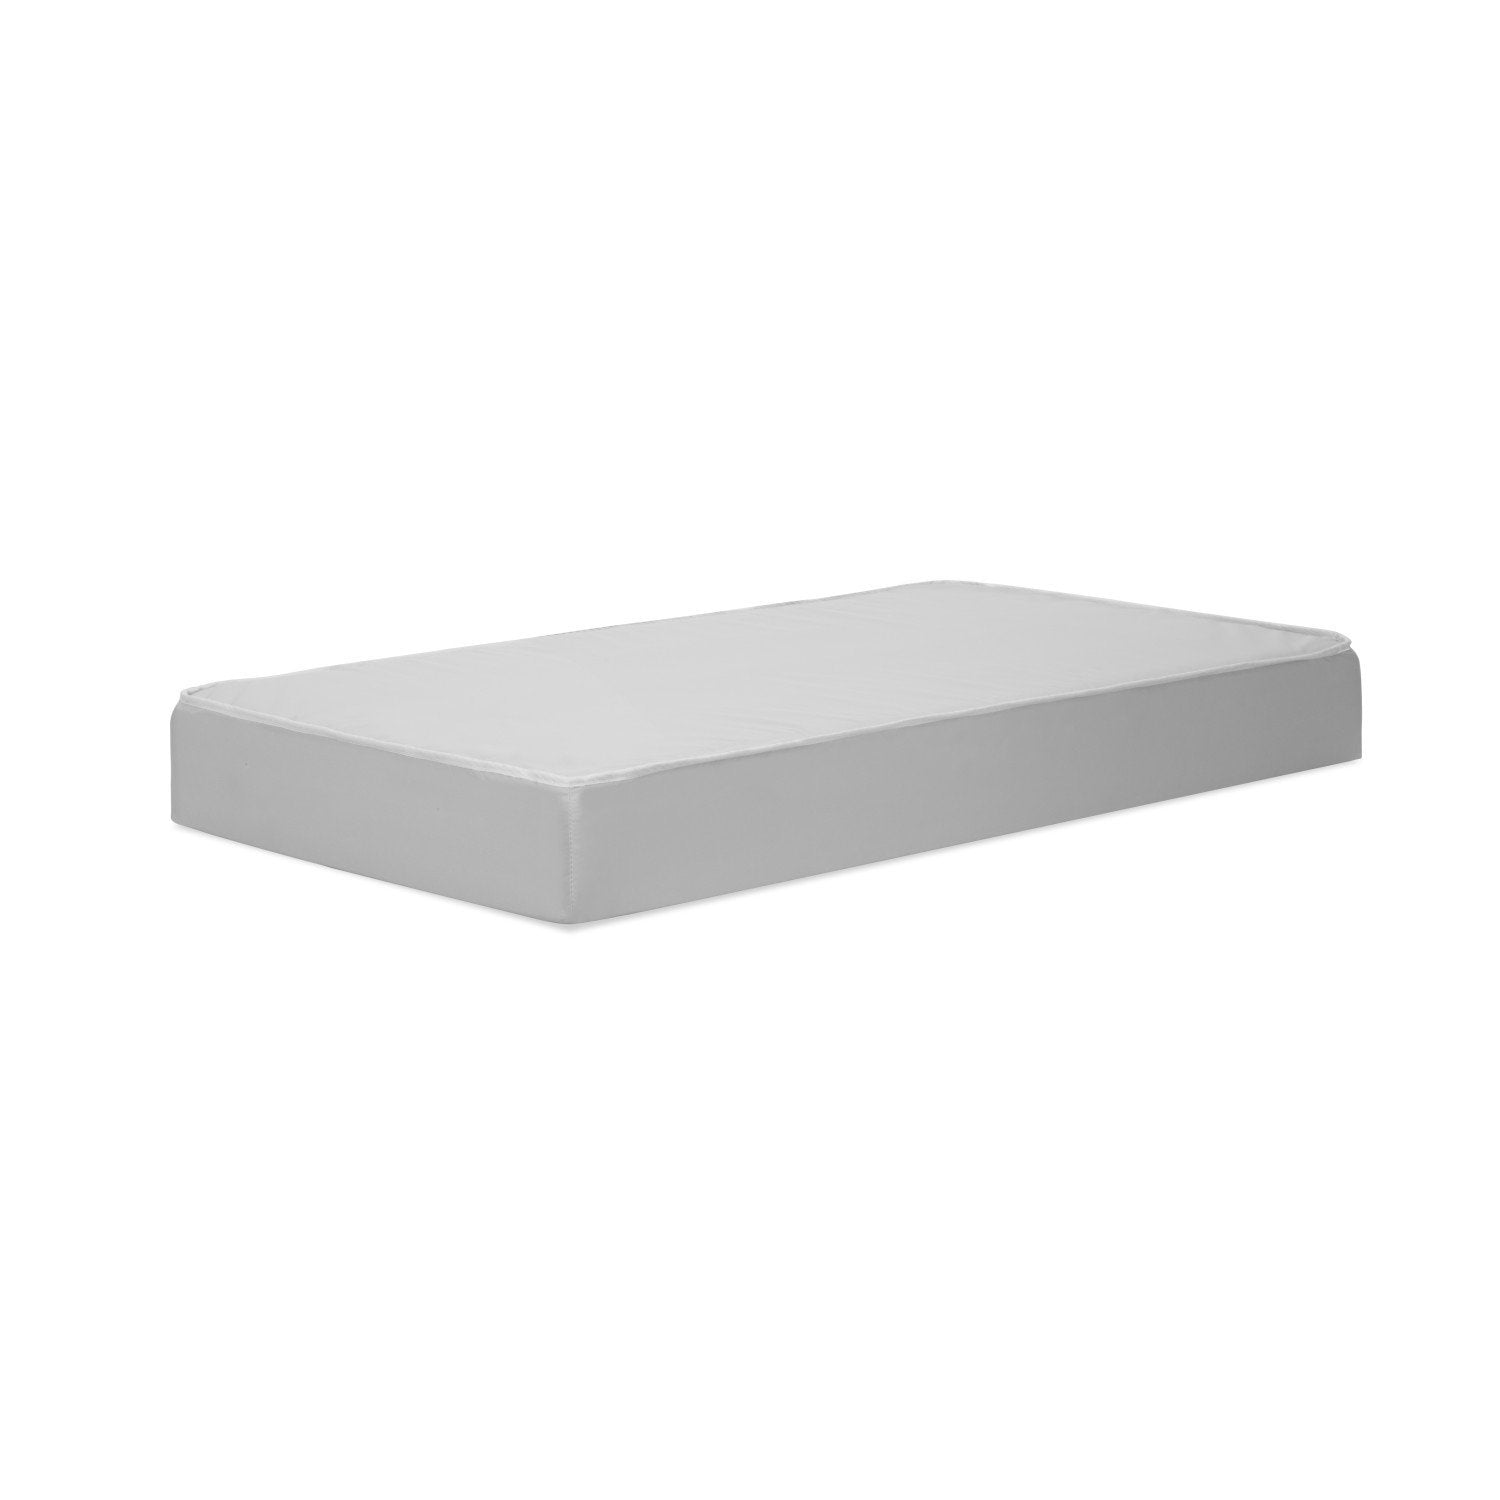 TotalCoil Mattress with Non-Toxic Hypoallergenic Waterproof Cover